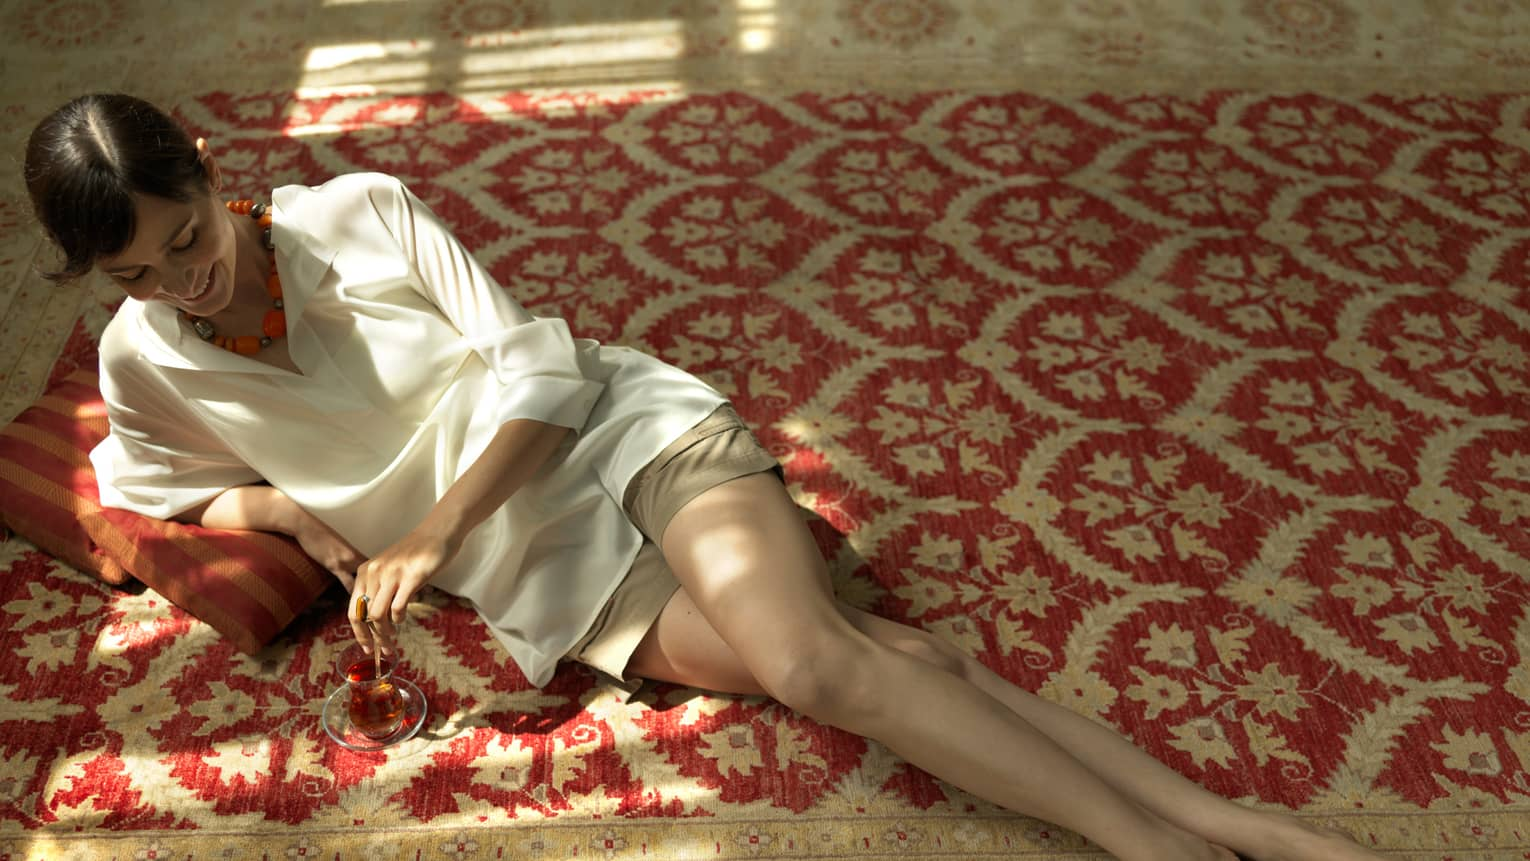 Woman lies under sun on kilim carpet, pillow with glass of wine